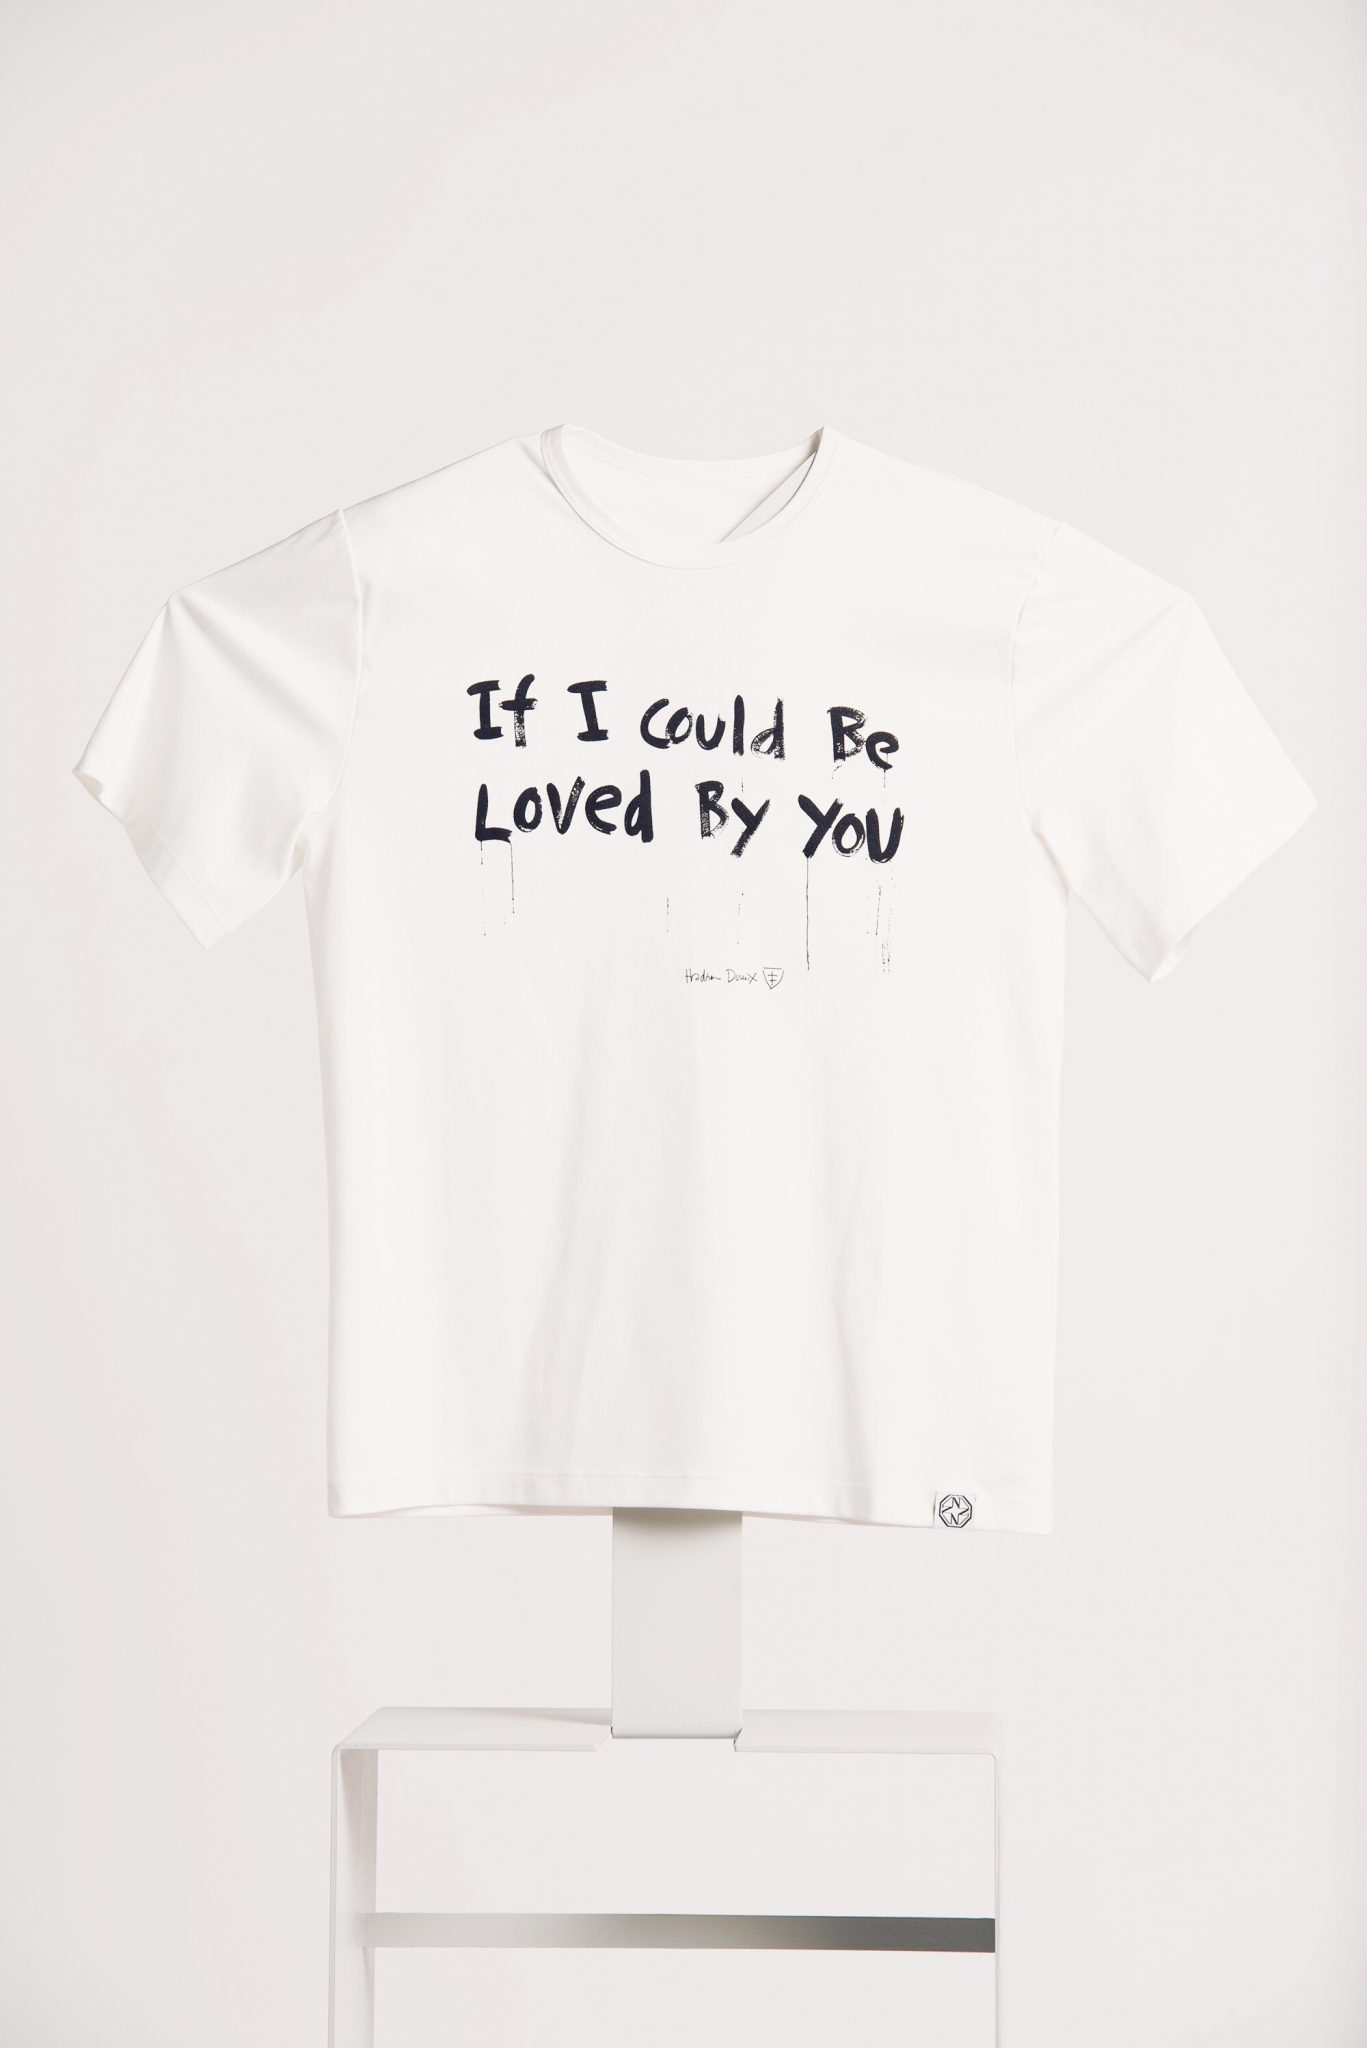 If I could be loved by you